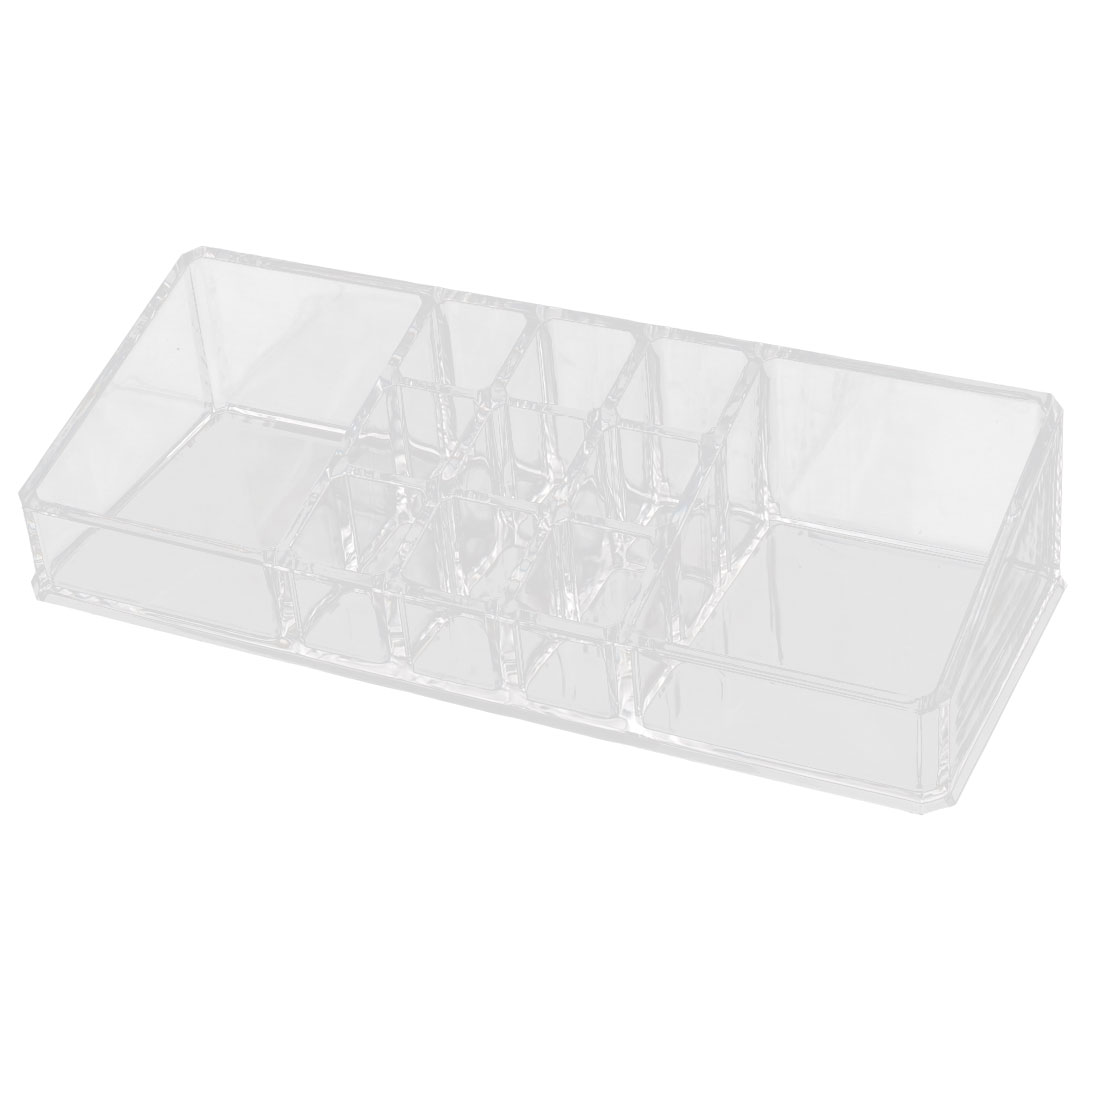 Acrylic 11 Slots Cosmetic Accessories Display Case Jewelry Box Organizer Clear